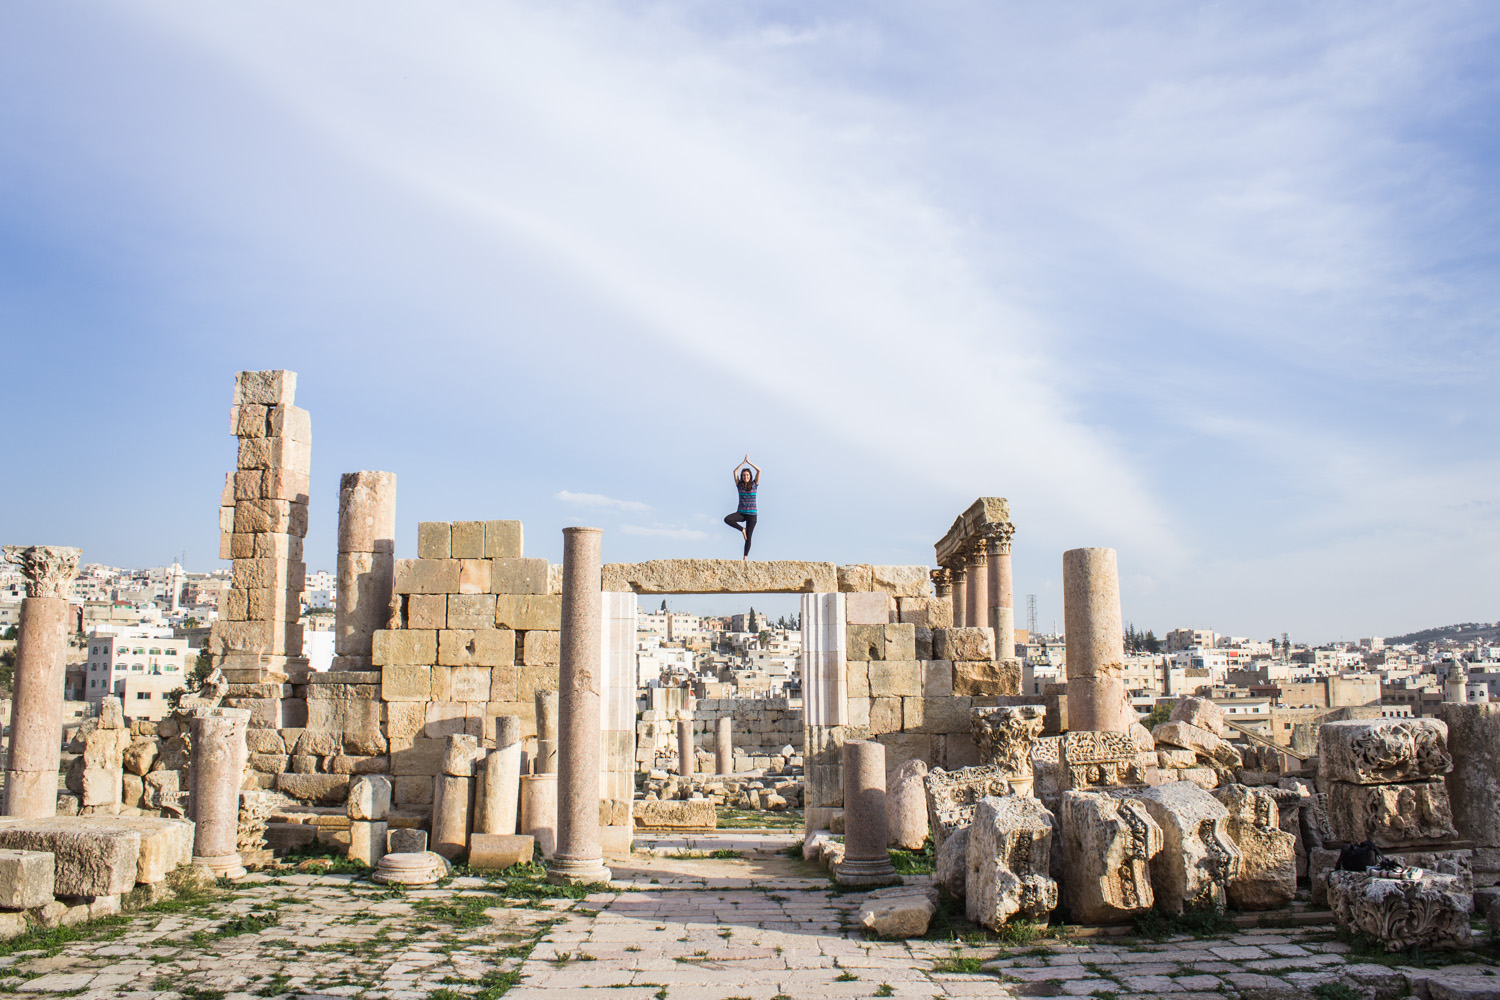 Genuinely one of my favourite moments, mostly because this split-second pose was so scary,but worth it for this photo. Also, this place of ruins is amazing. • Jerash, Jordan •